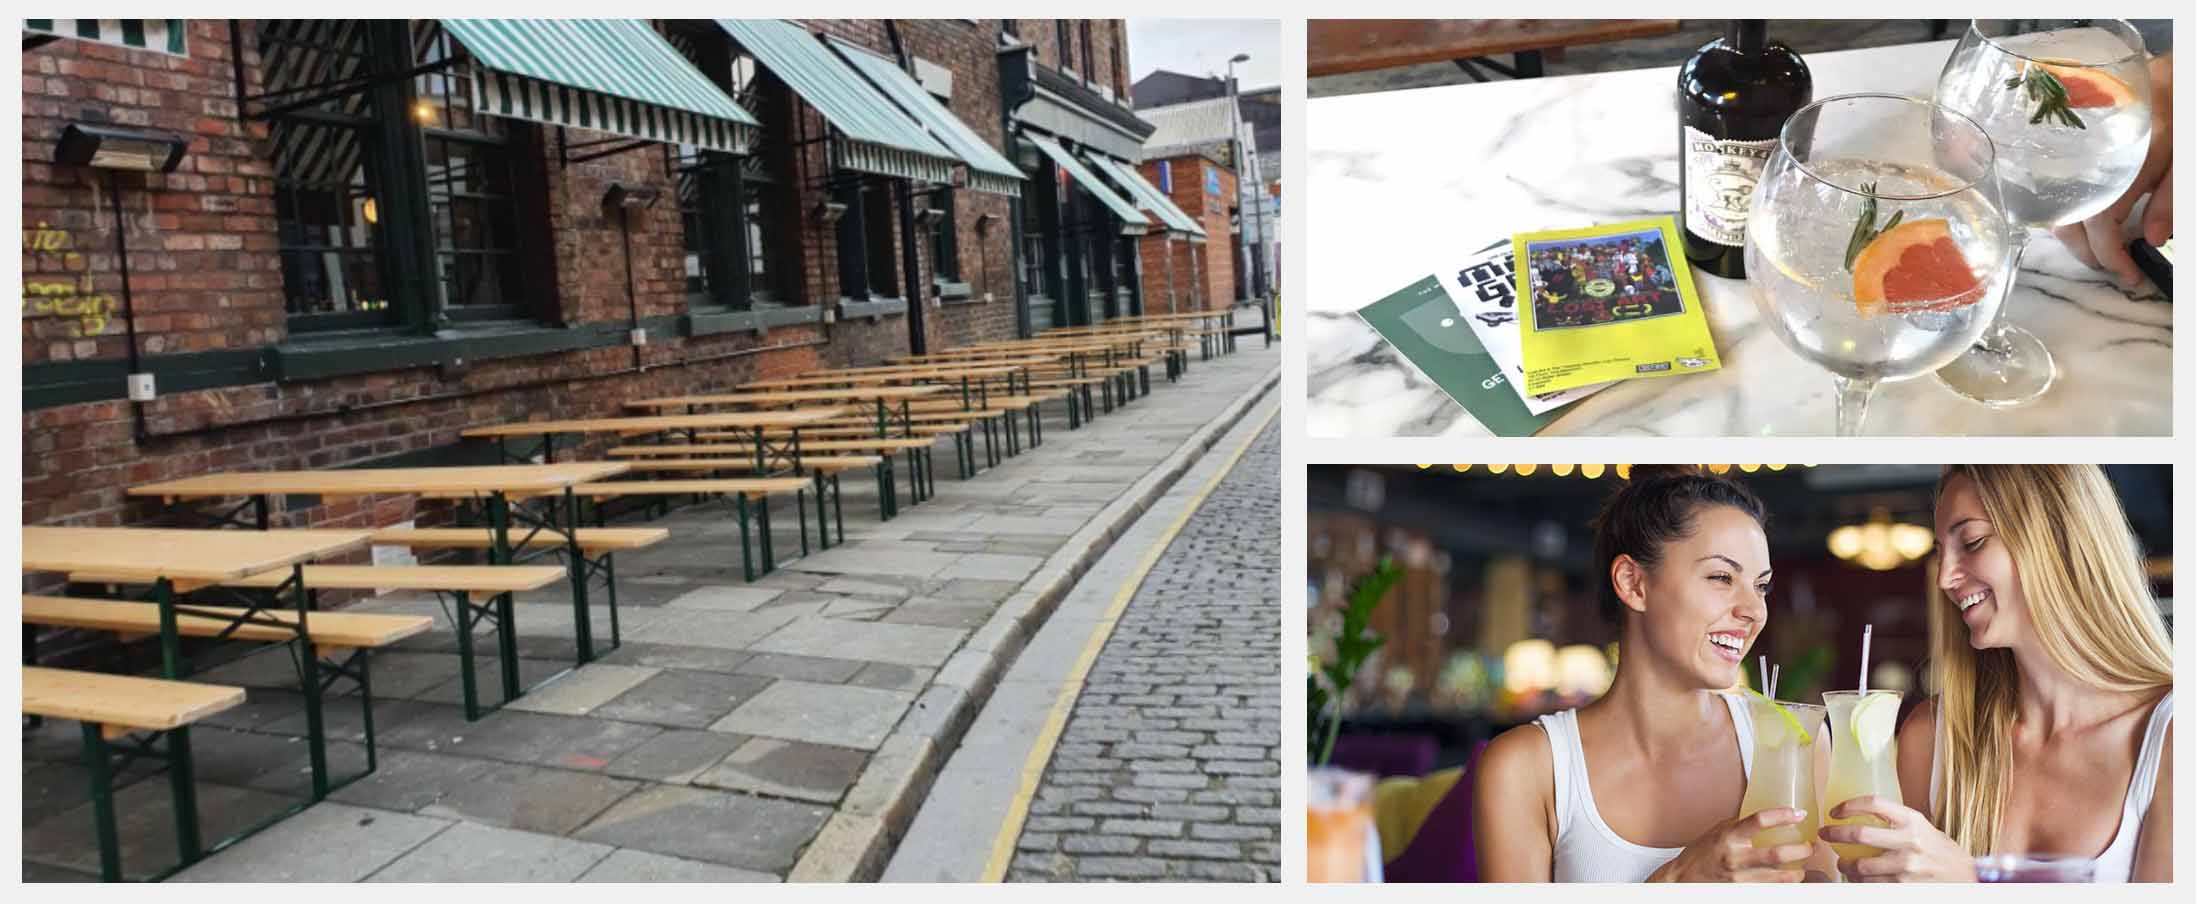 Best Beer Gardens in Liverpool - The Merchant